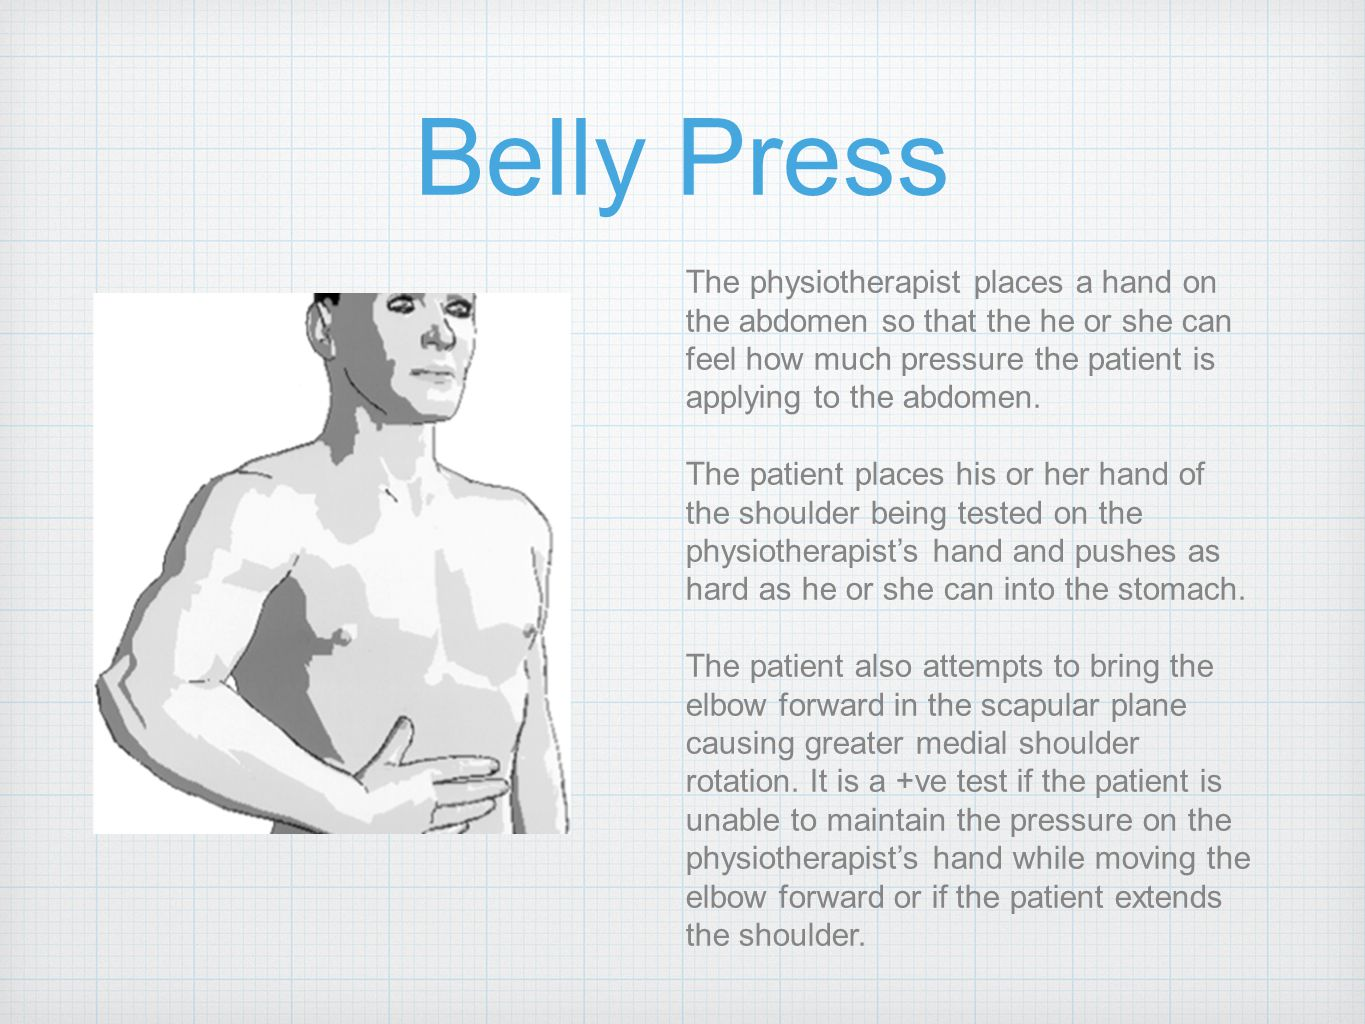 Belly Press The physiotherapist places a hand on the abdomen so that the he or she can feel how much pressure the patient is applying to the abdomen.